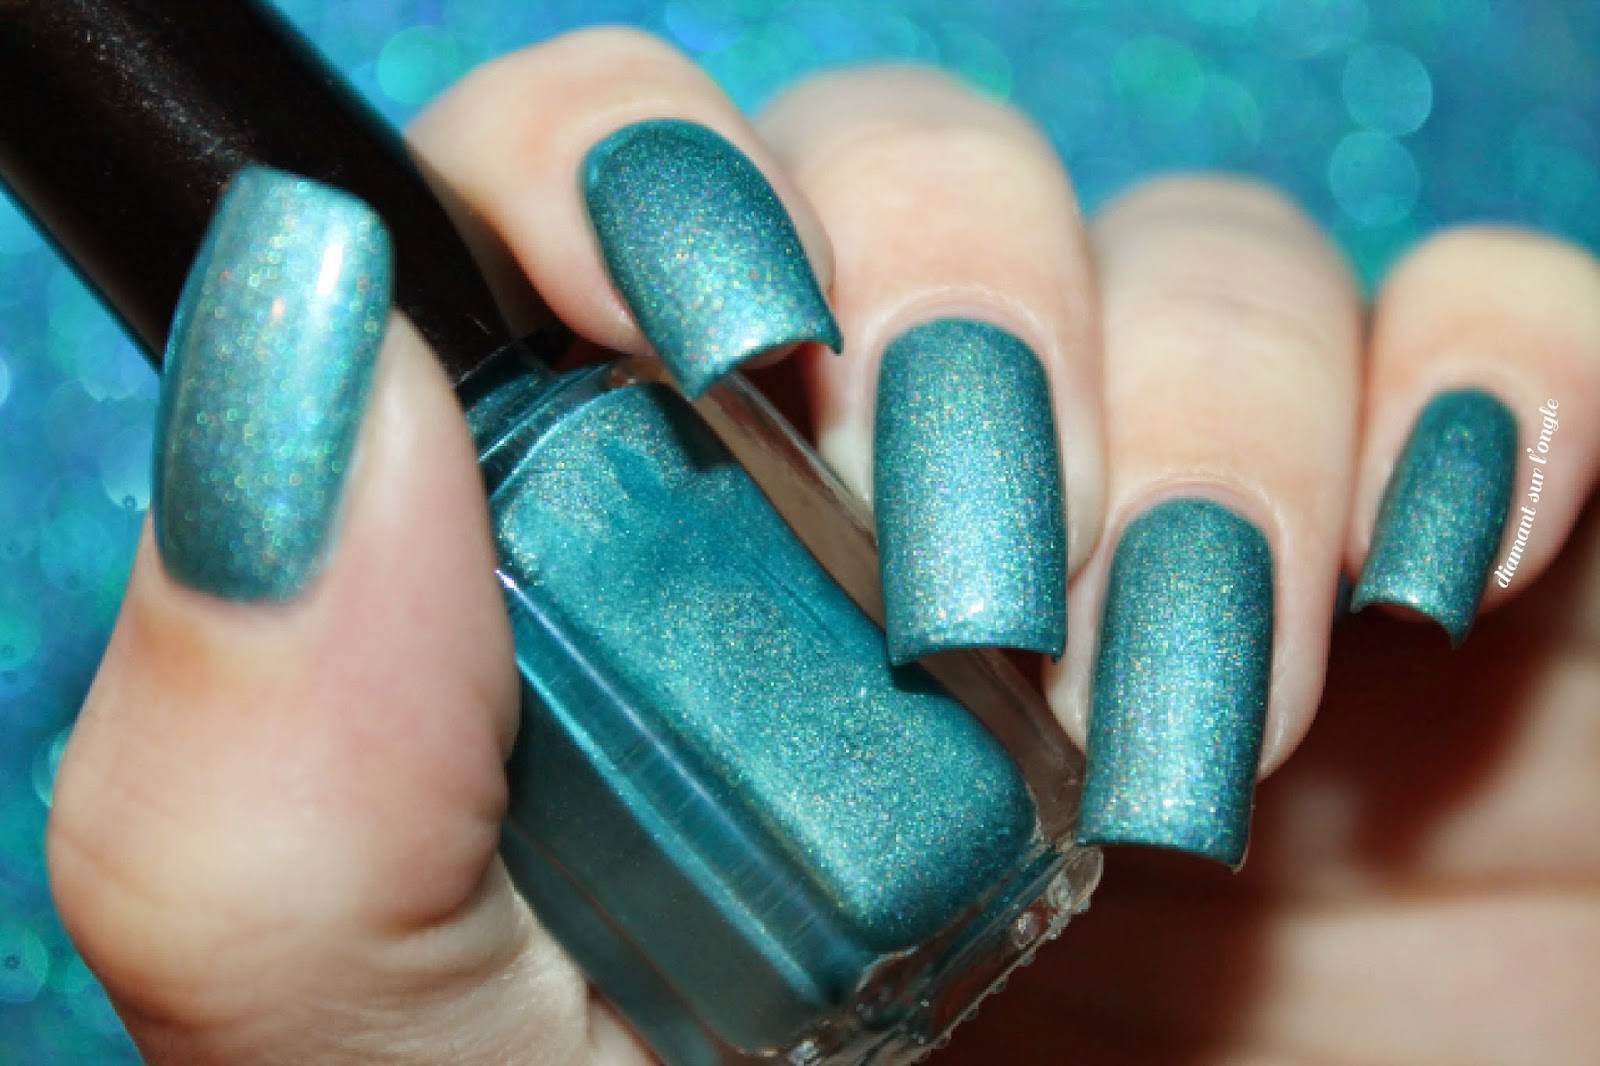 Swatch of a teal holographic franken nail polish